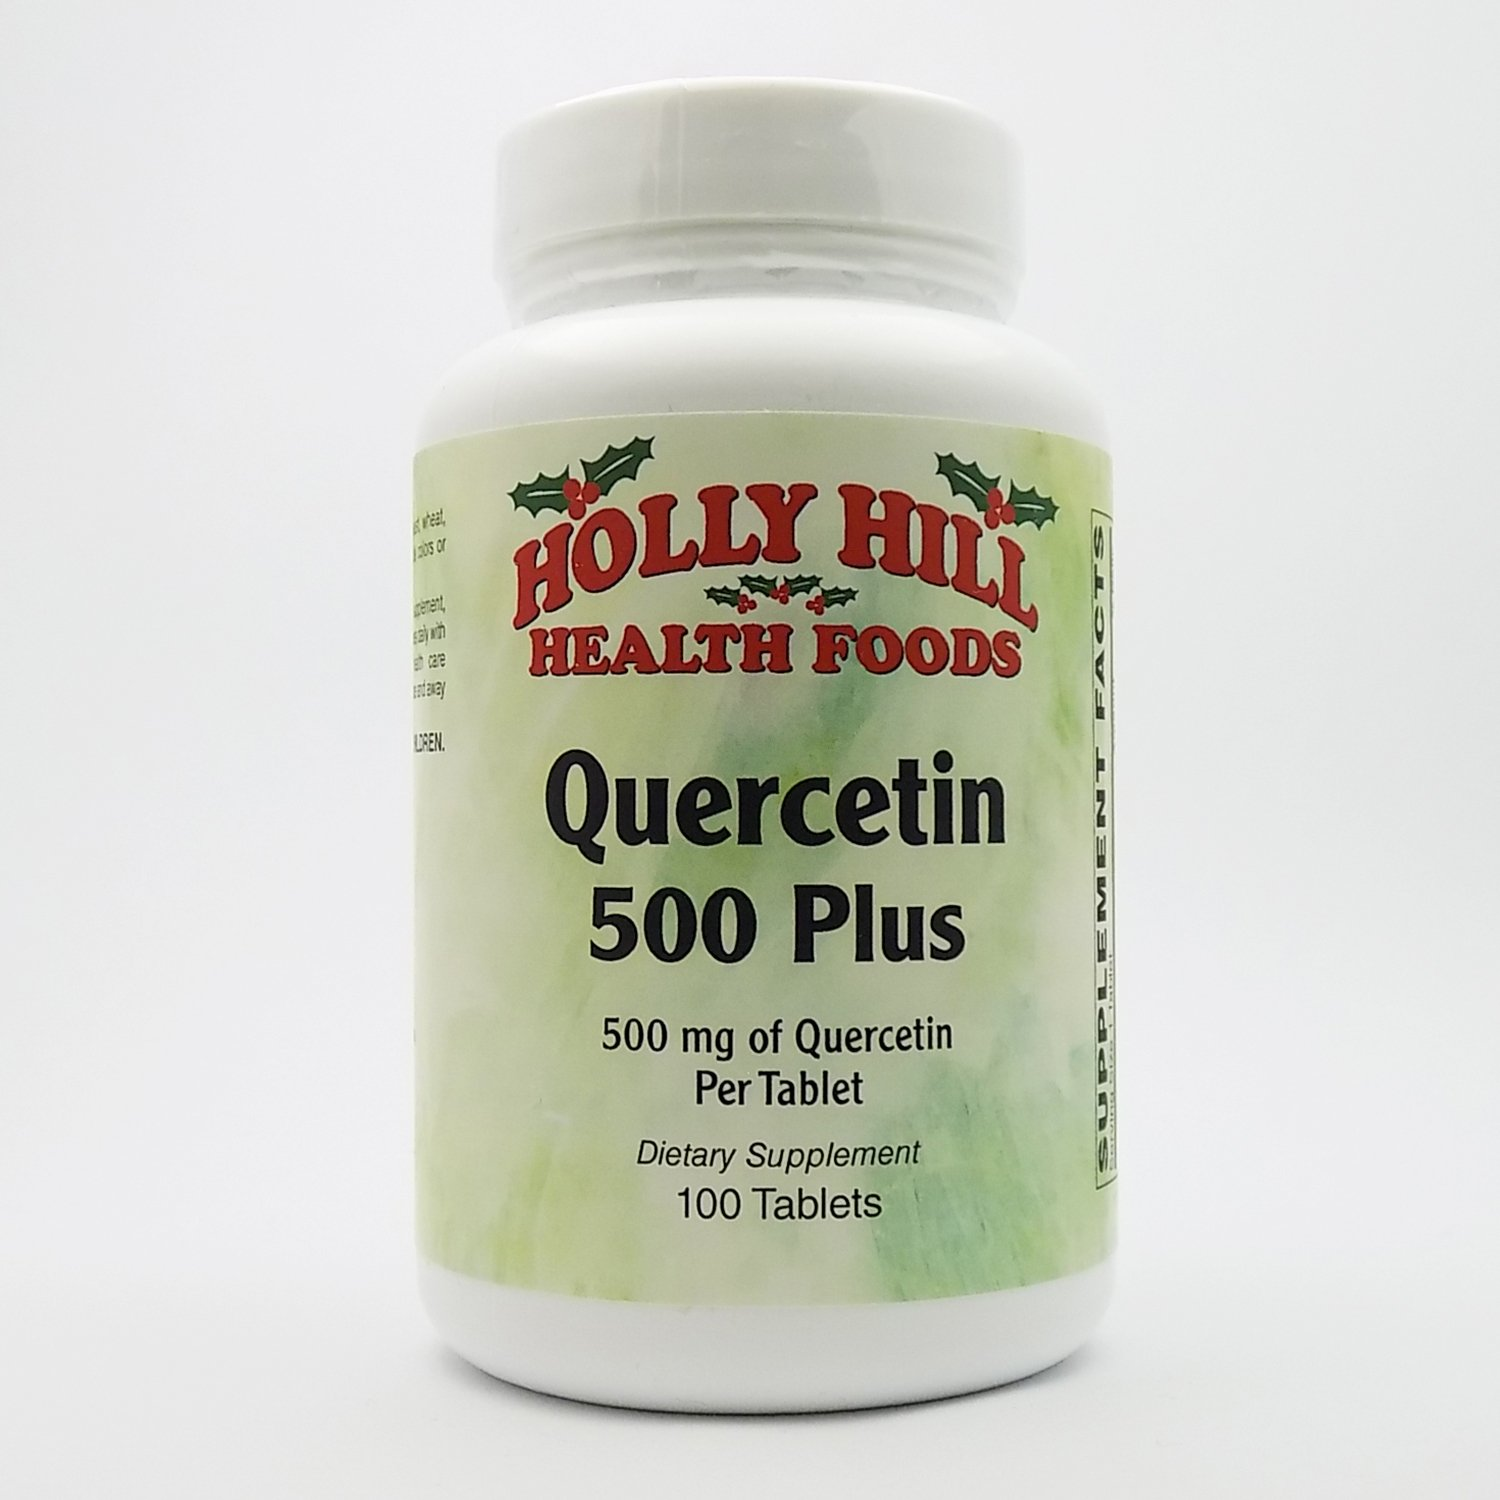 Holly Hill Health Foods, Quercetin Plus 500 MG, 100 Tablets